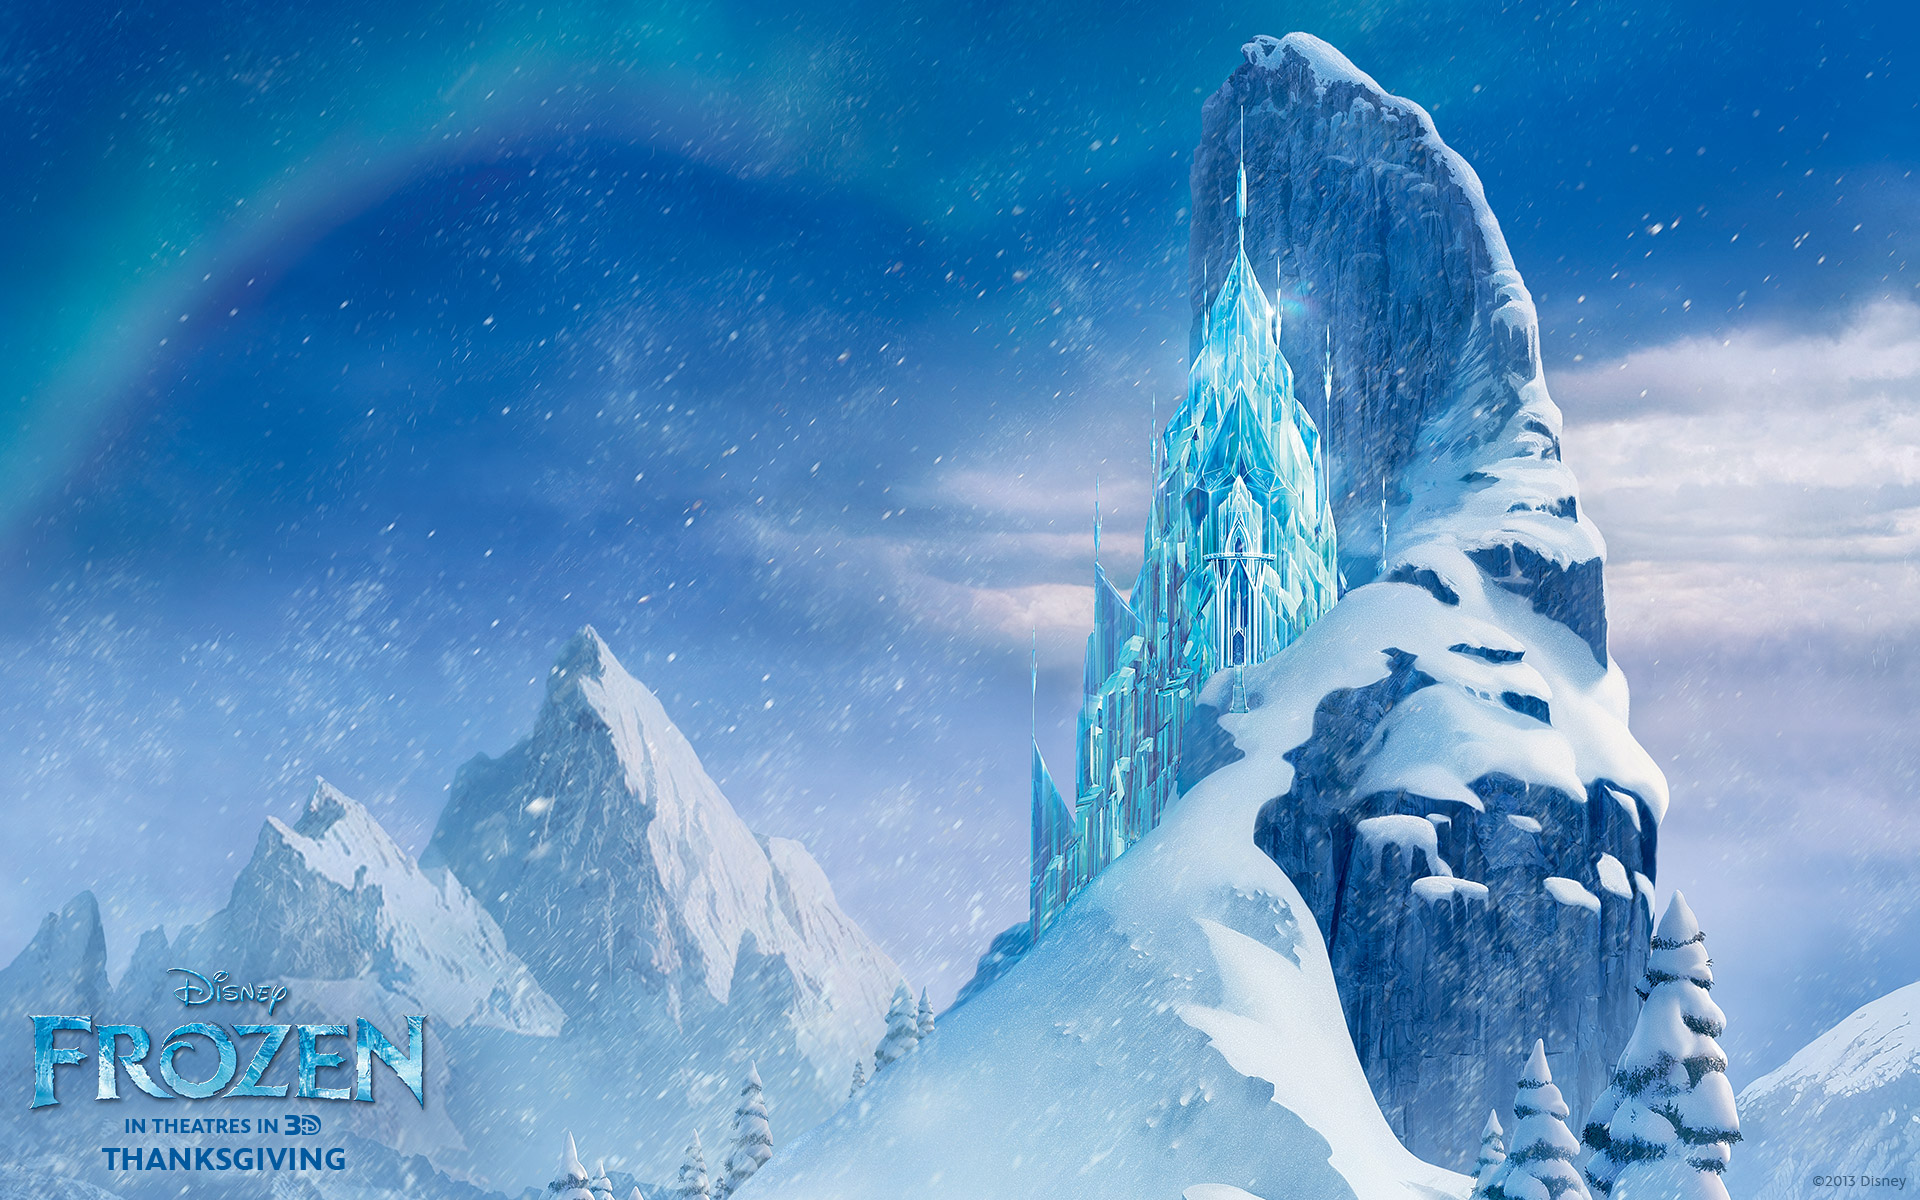 let it go (song) images elsa's ice castle hd wallpaper and